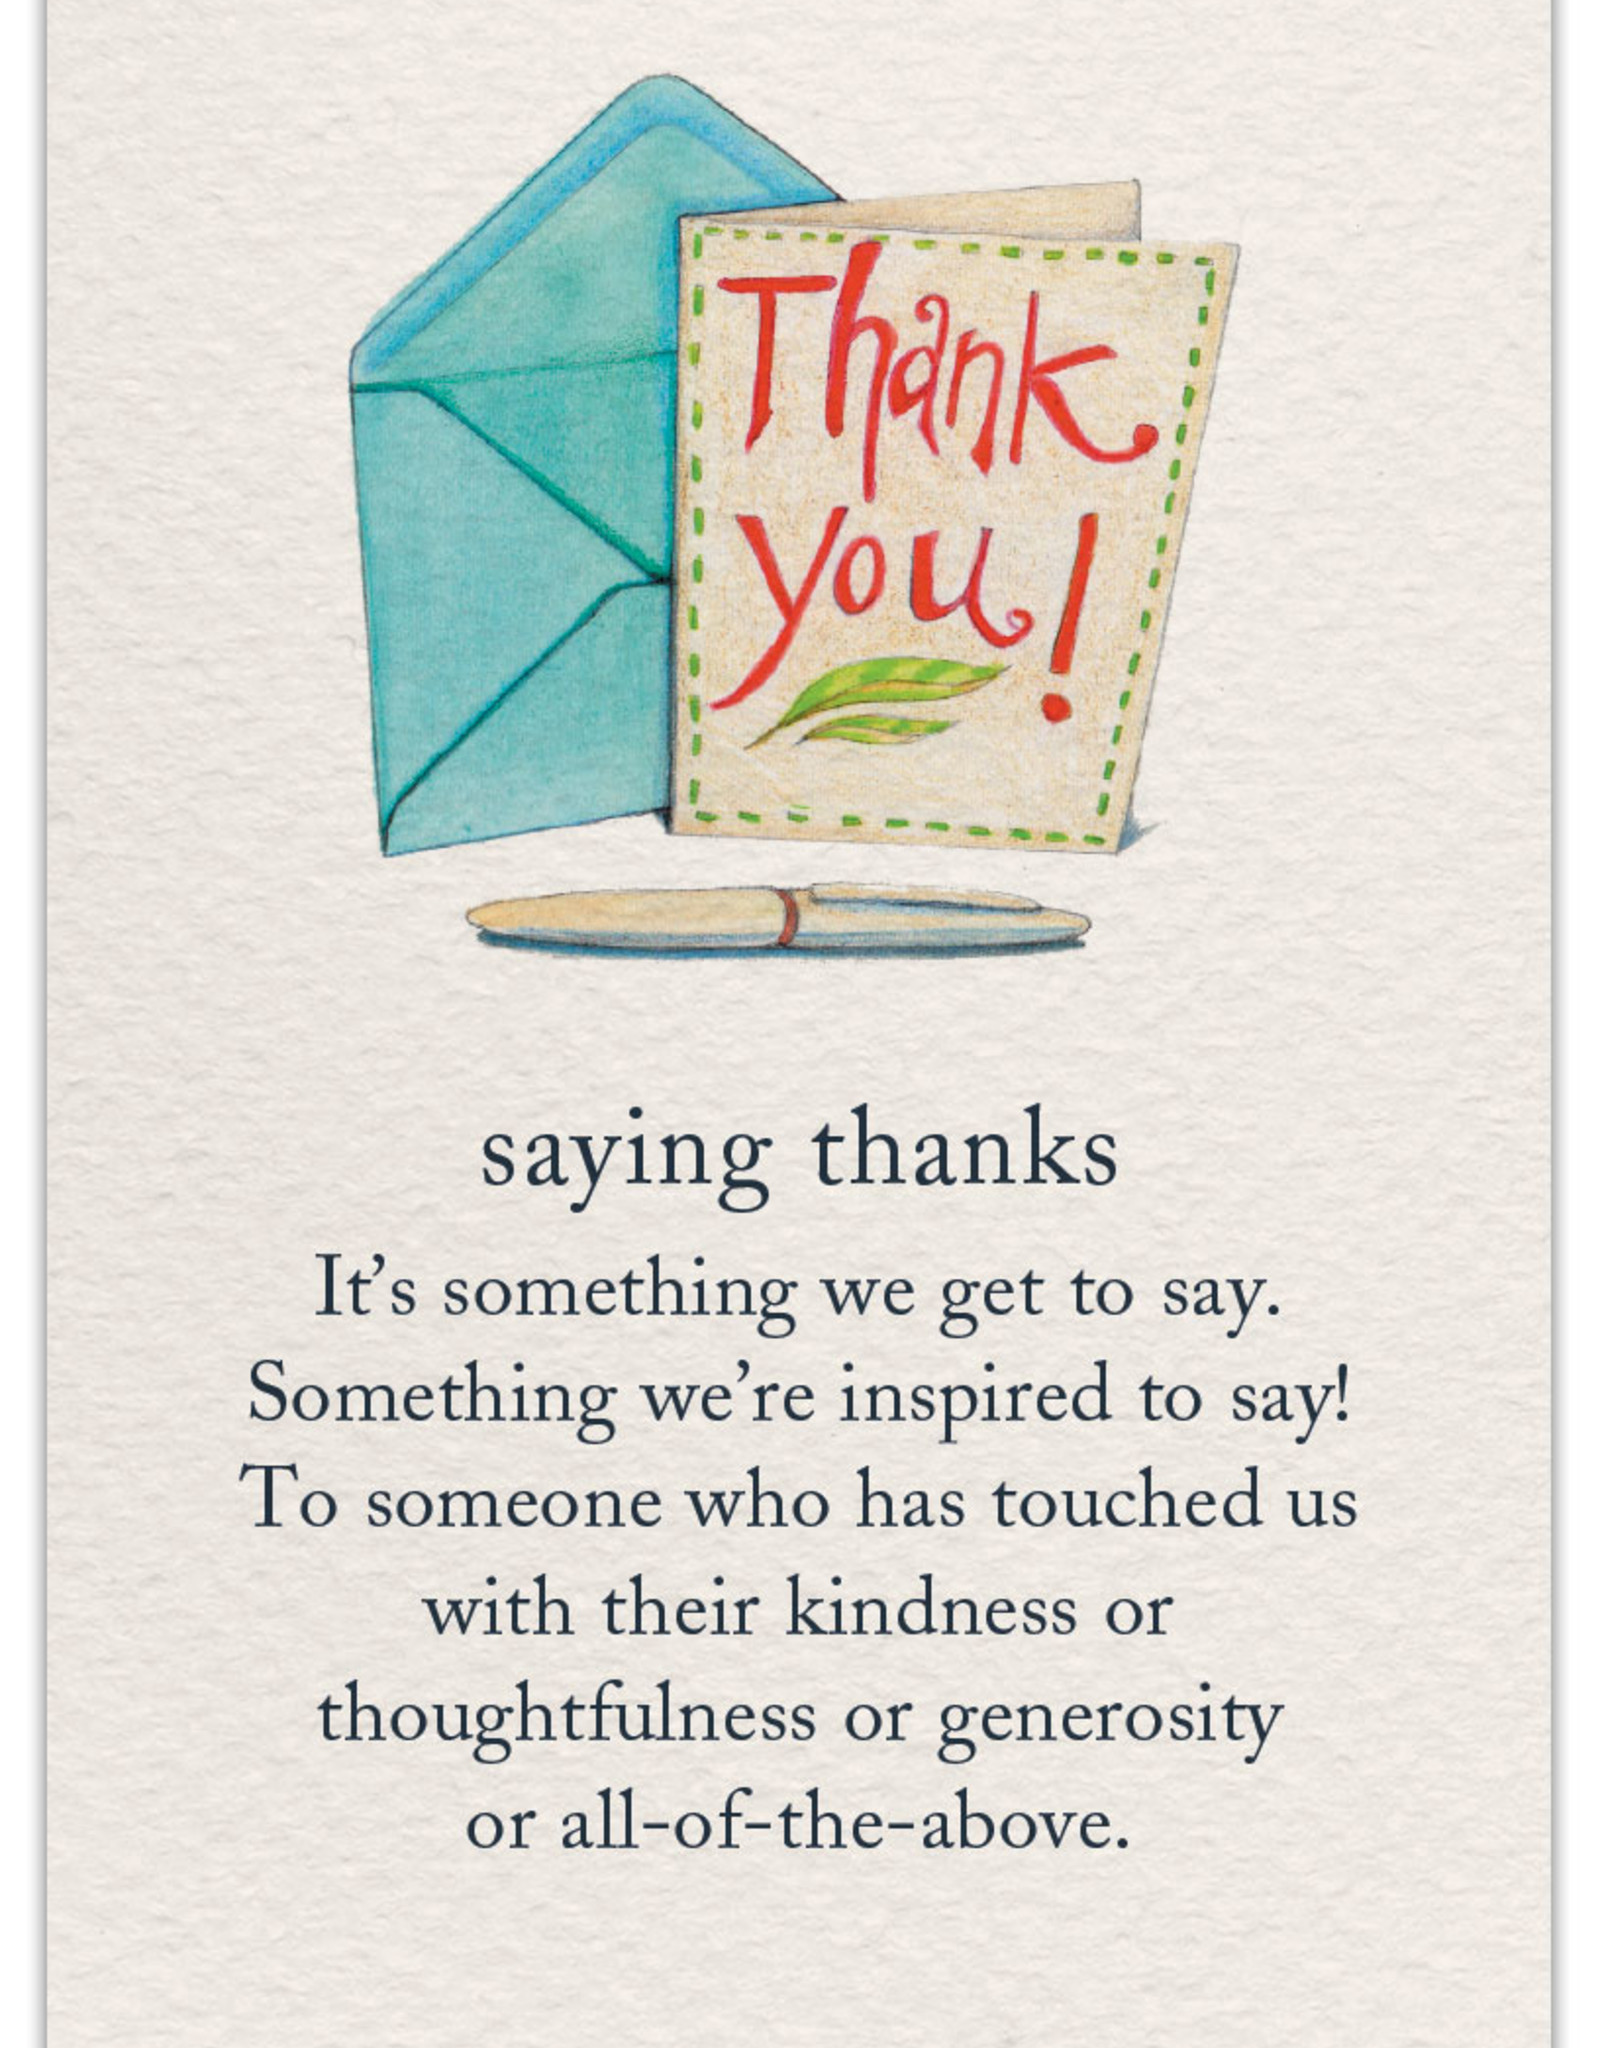 Cardthartic Cardthartic - Saying Thanks